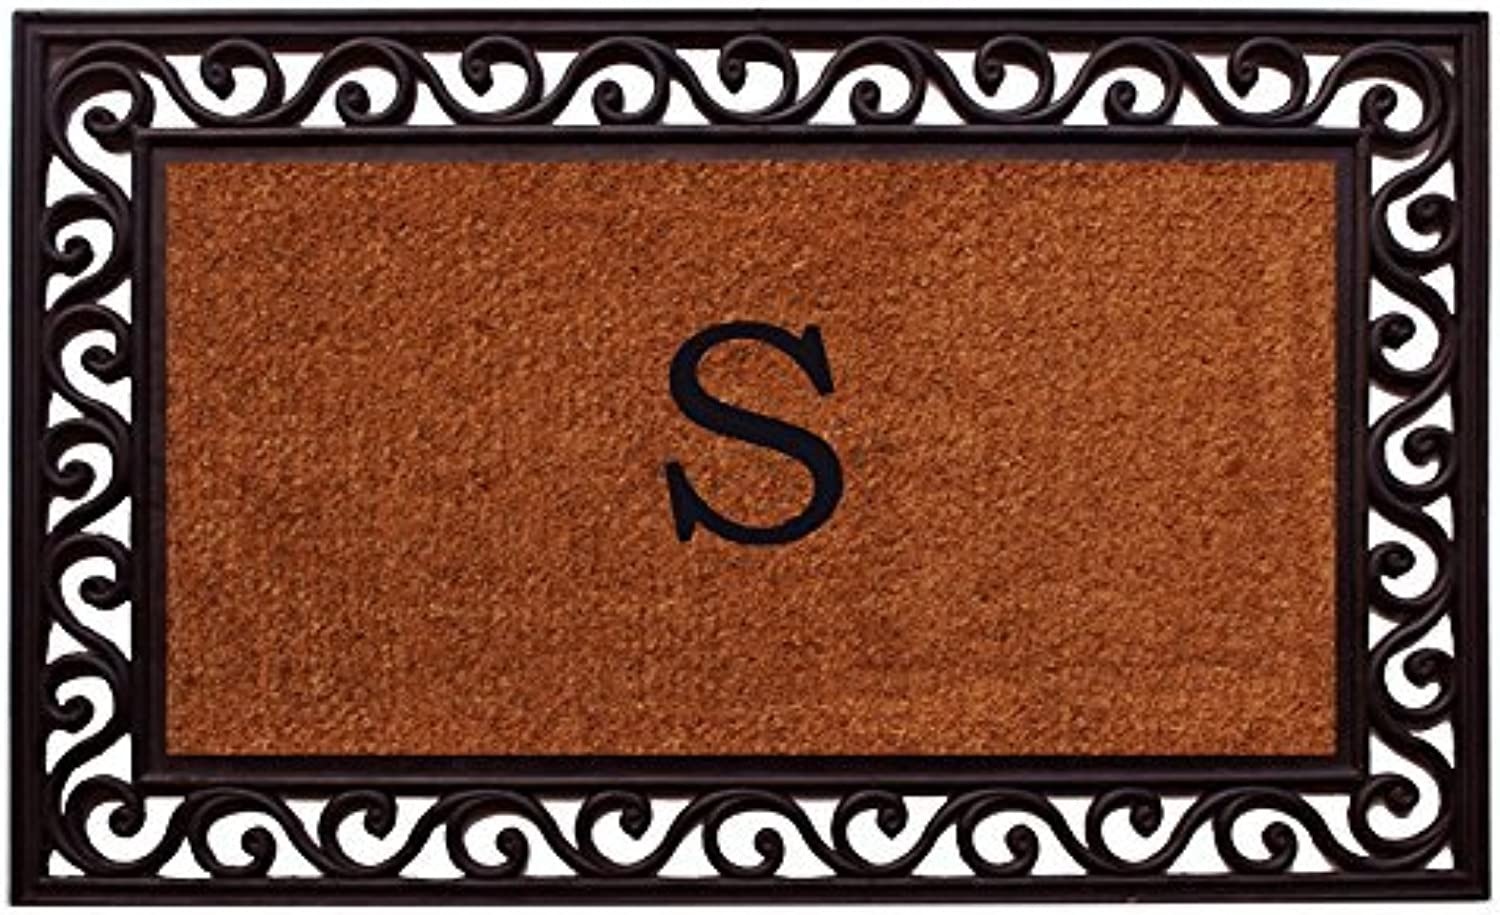 Home & More 100061830S Rembrandt Monogram Doormat 18-Inch X 30-Inch (Letter S)